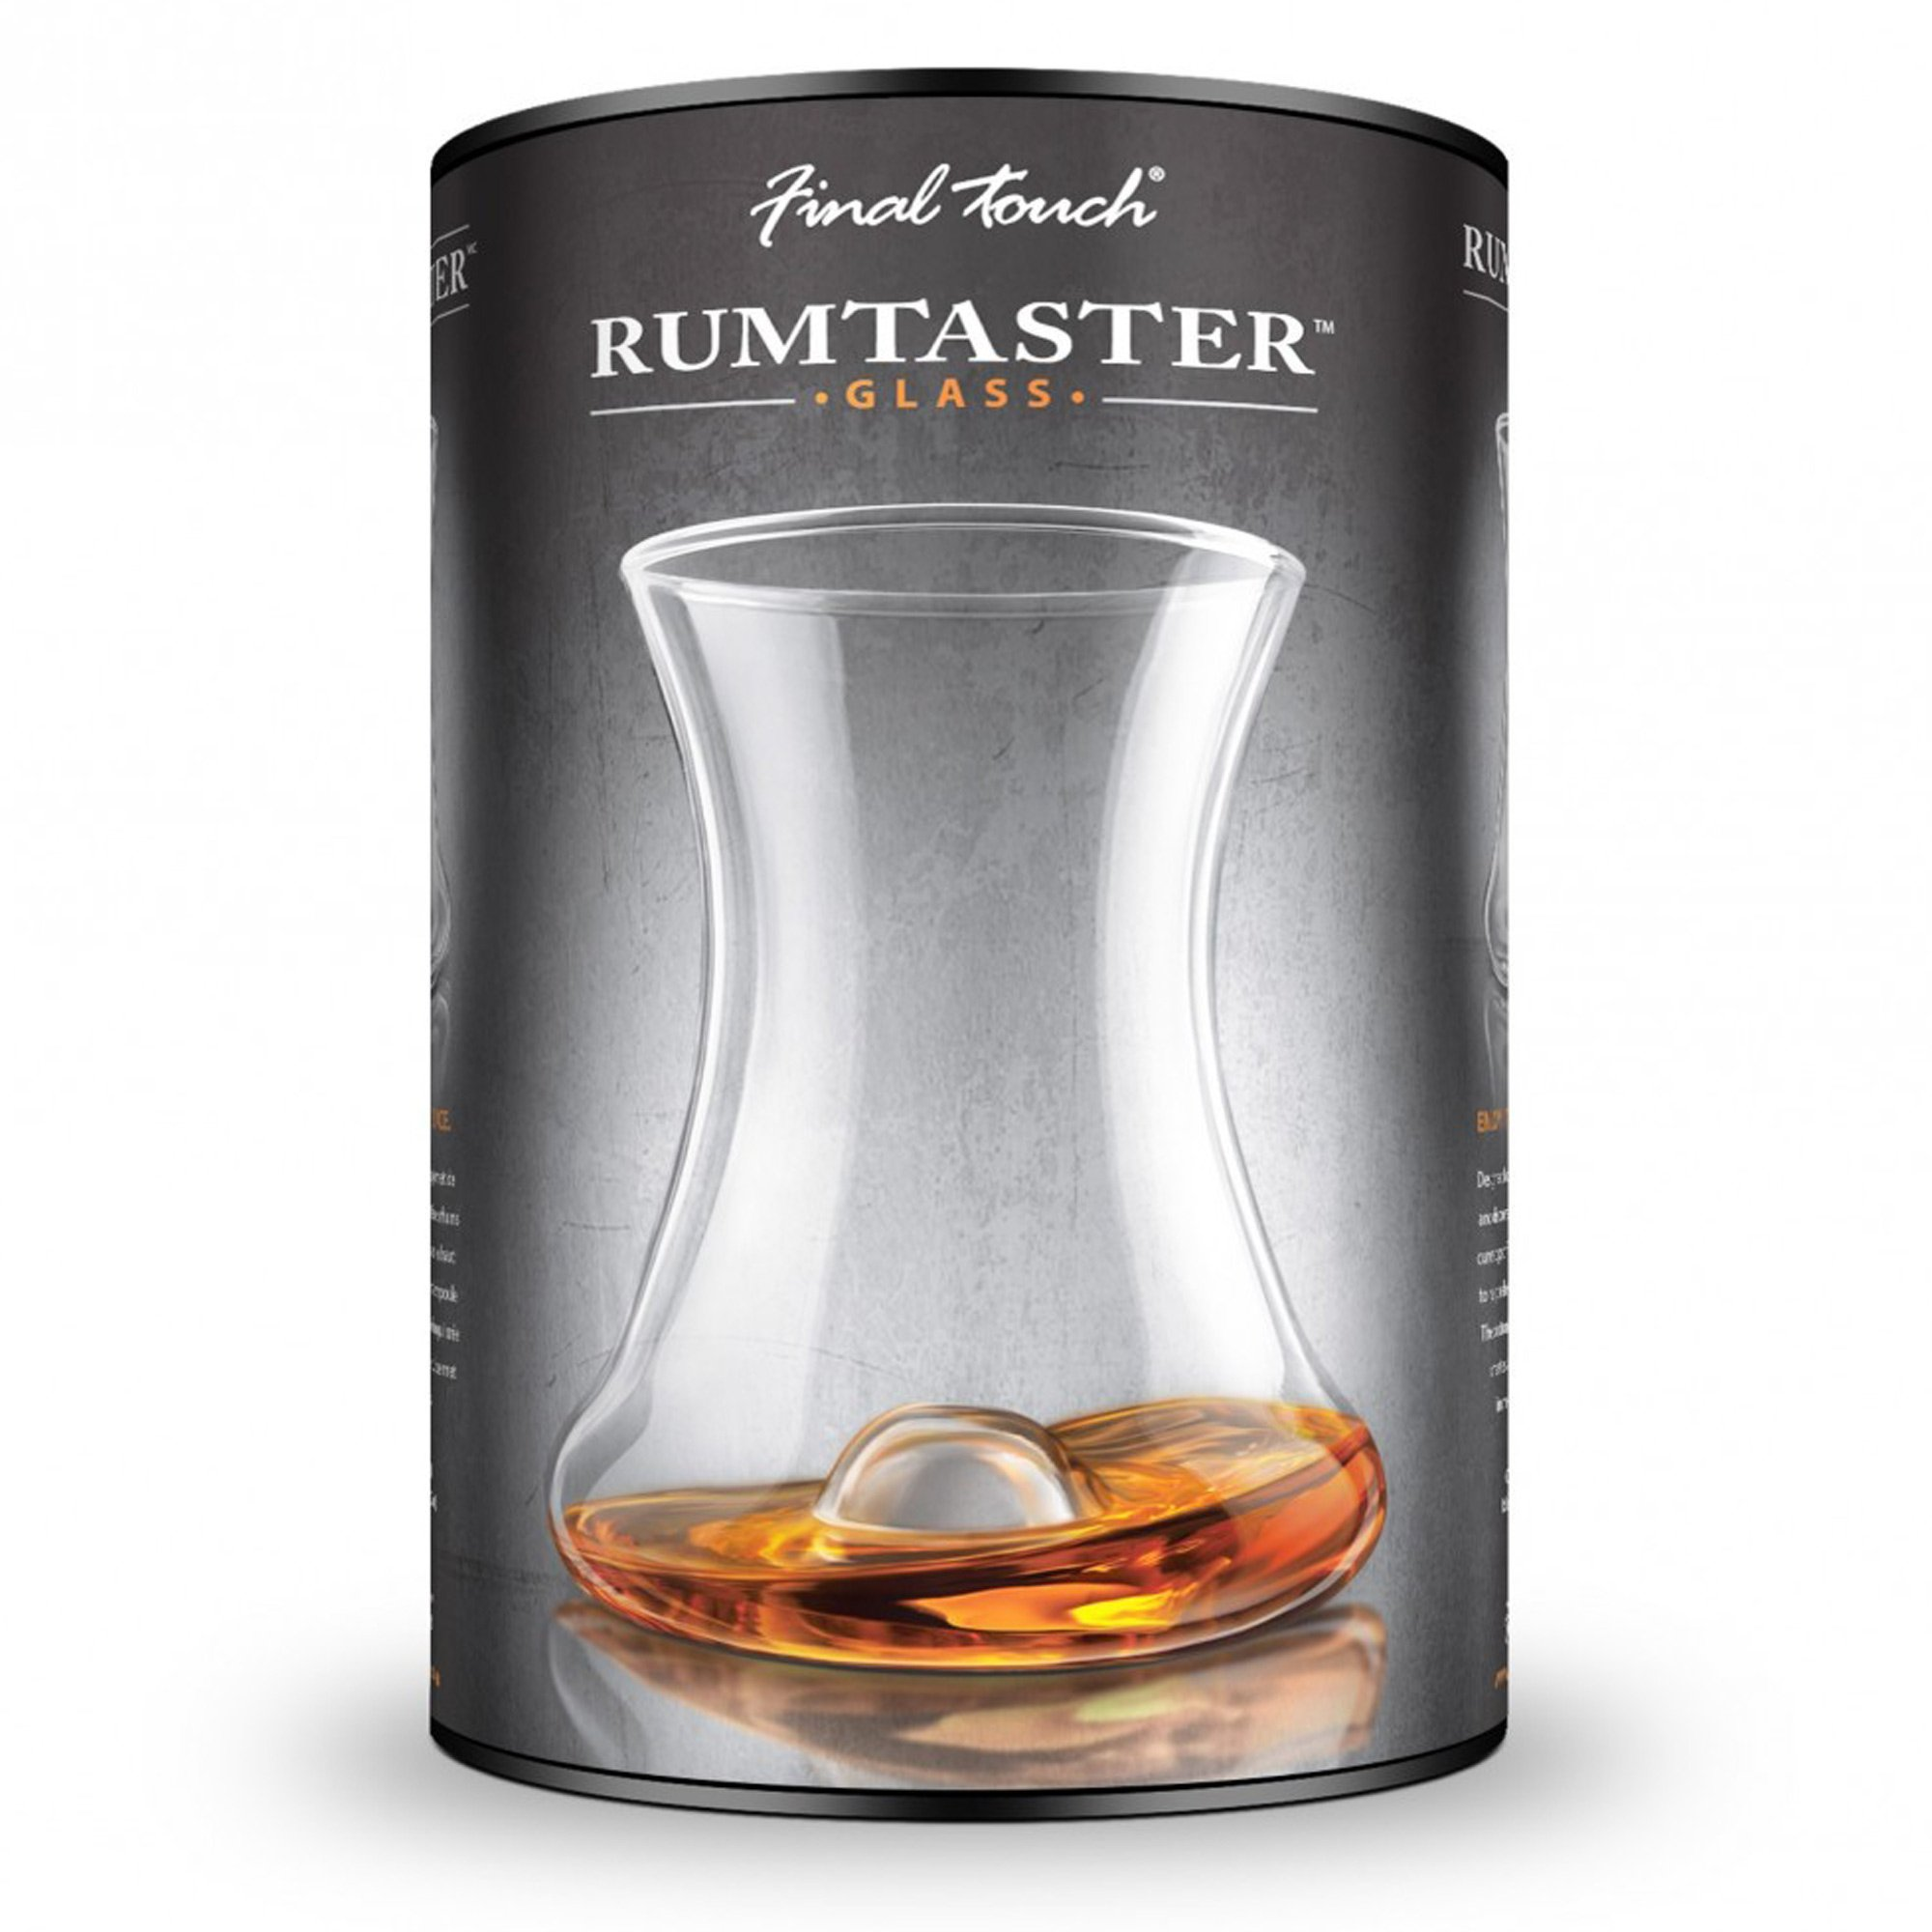 Final Touch 11.8 Ounce RumTaster Glass by Final Touch (Image #3)